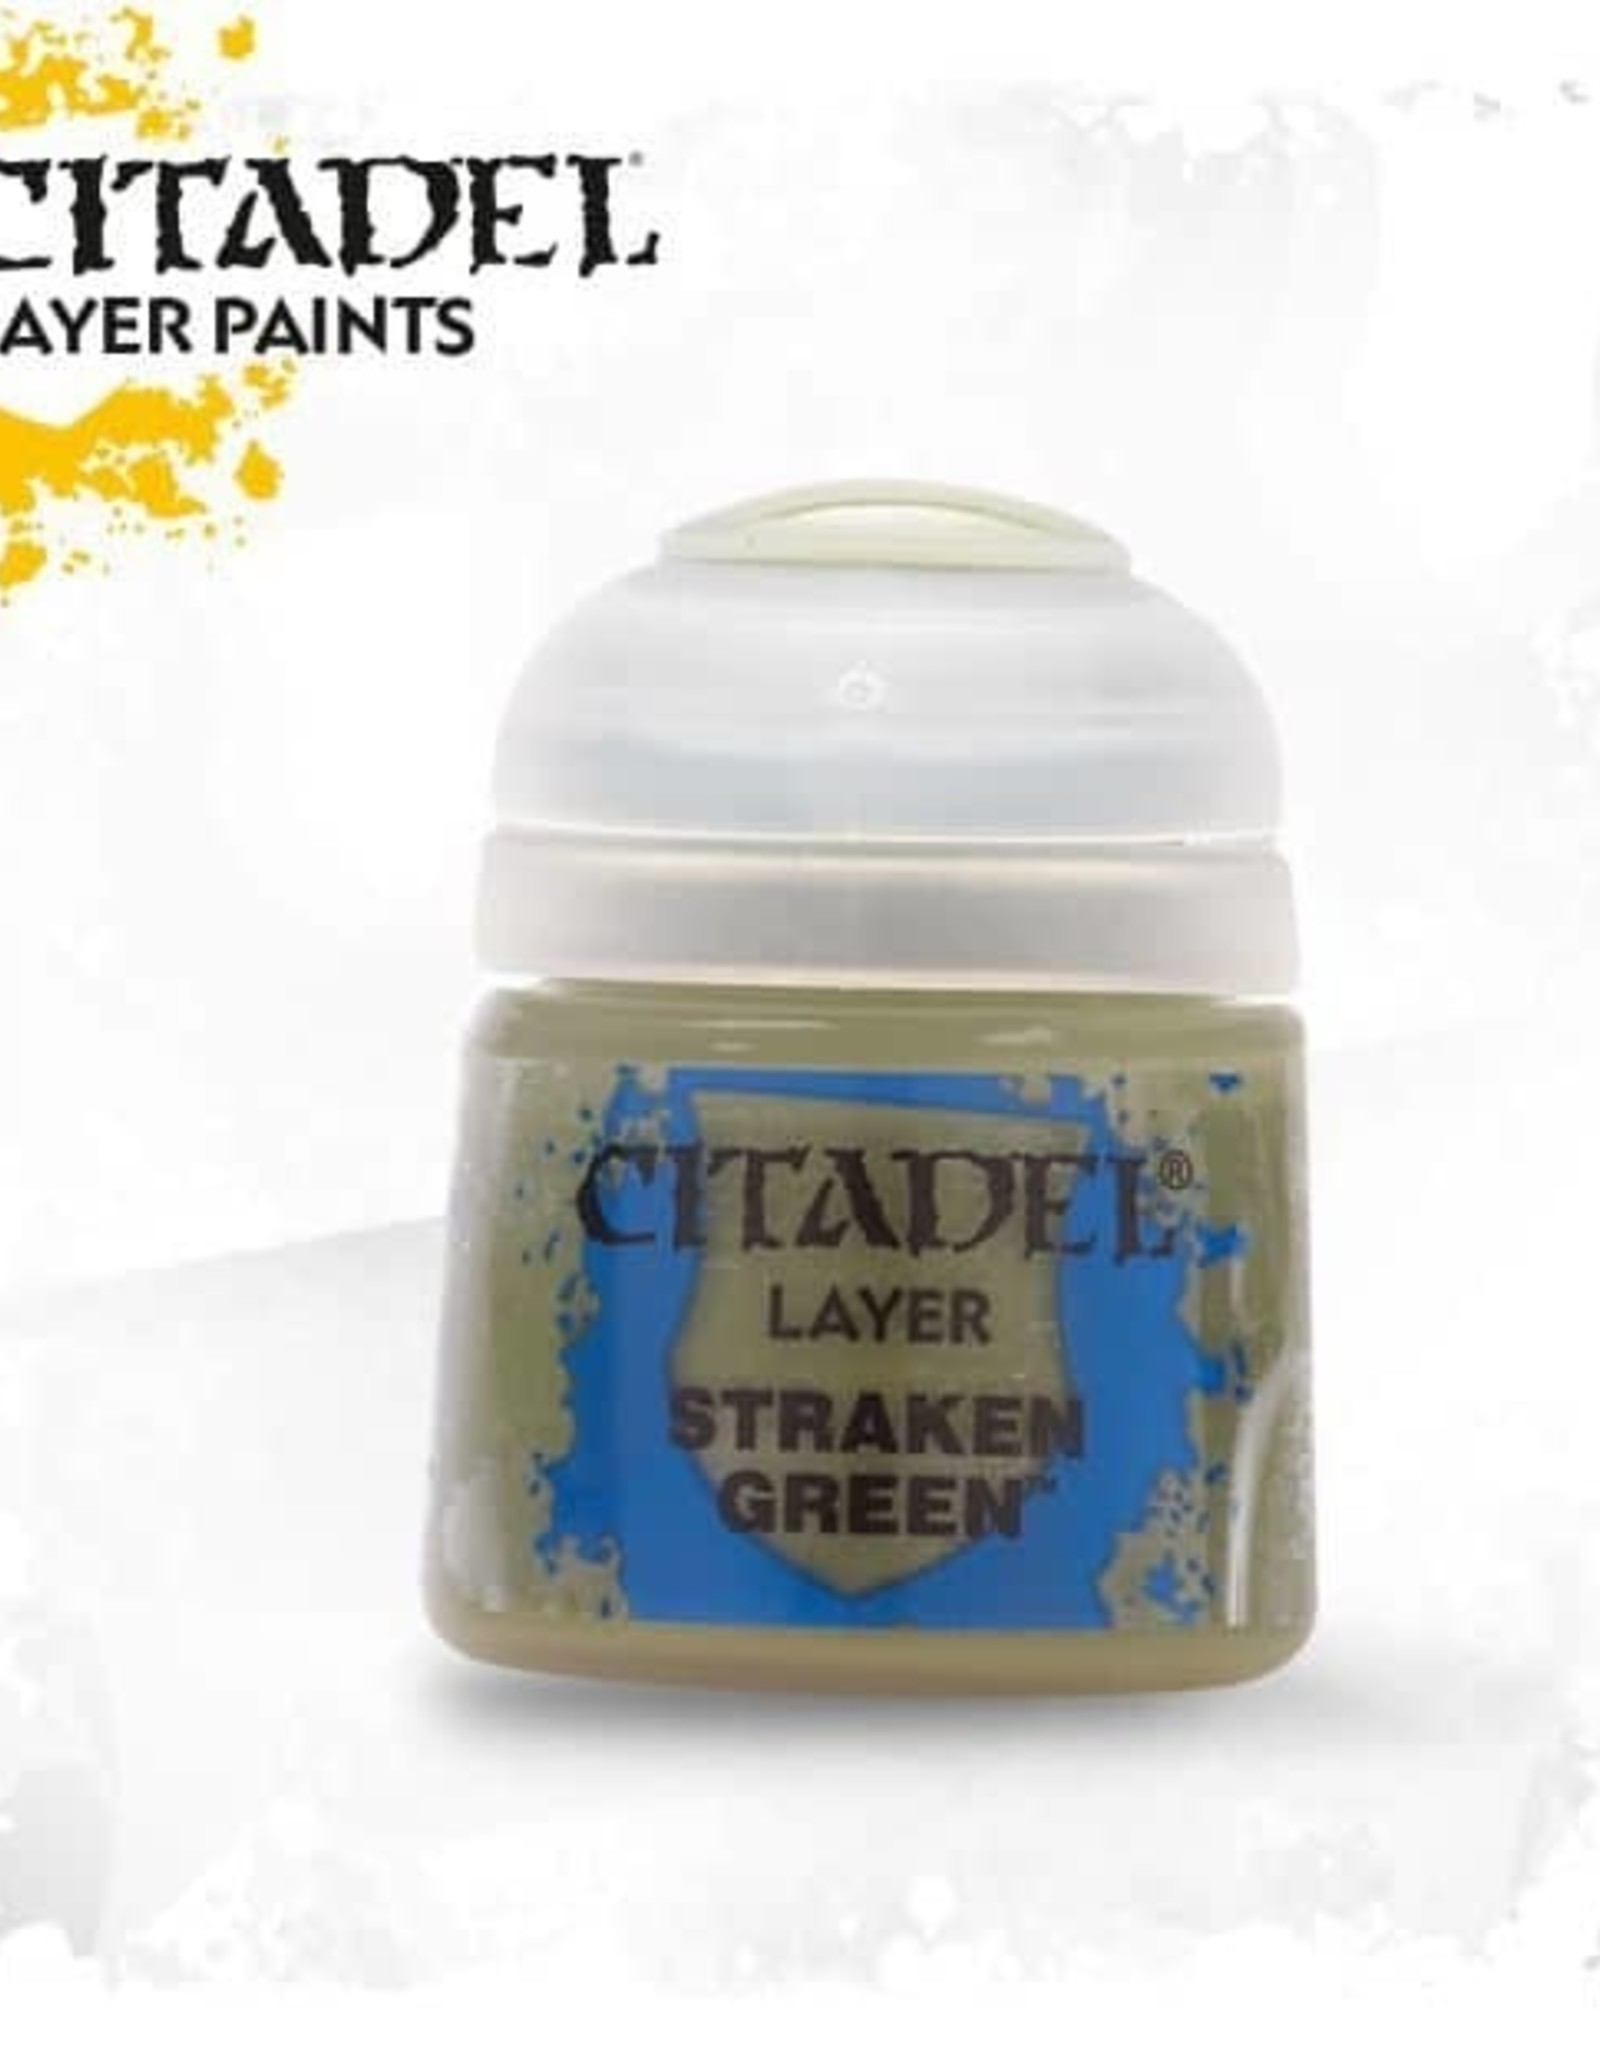 Citadel Layer Paint: Straken Green